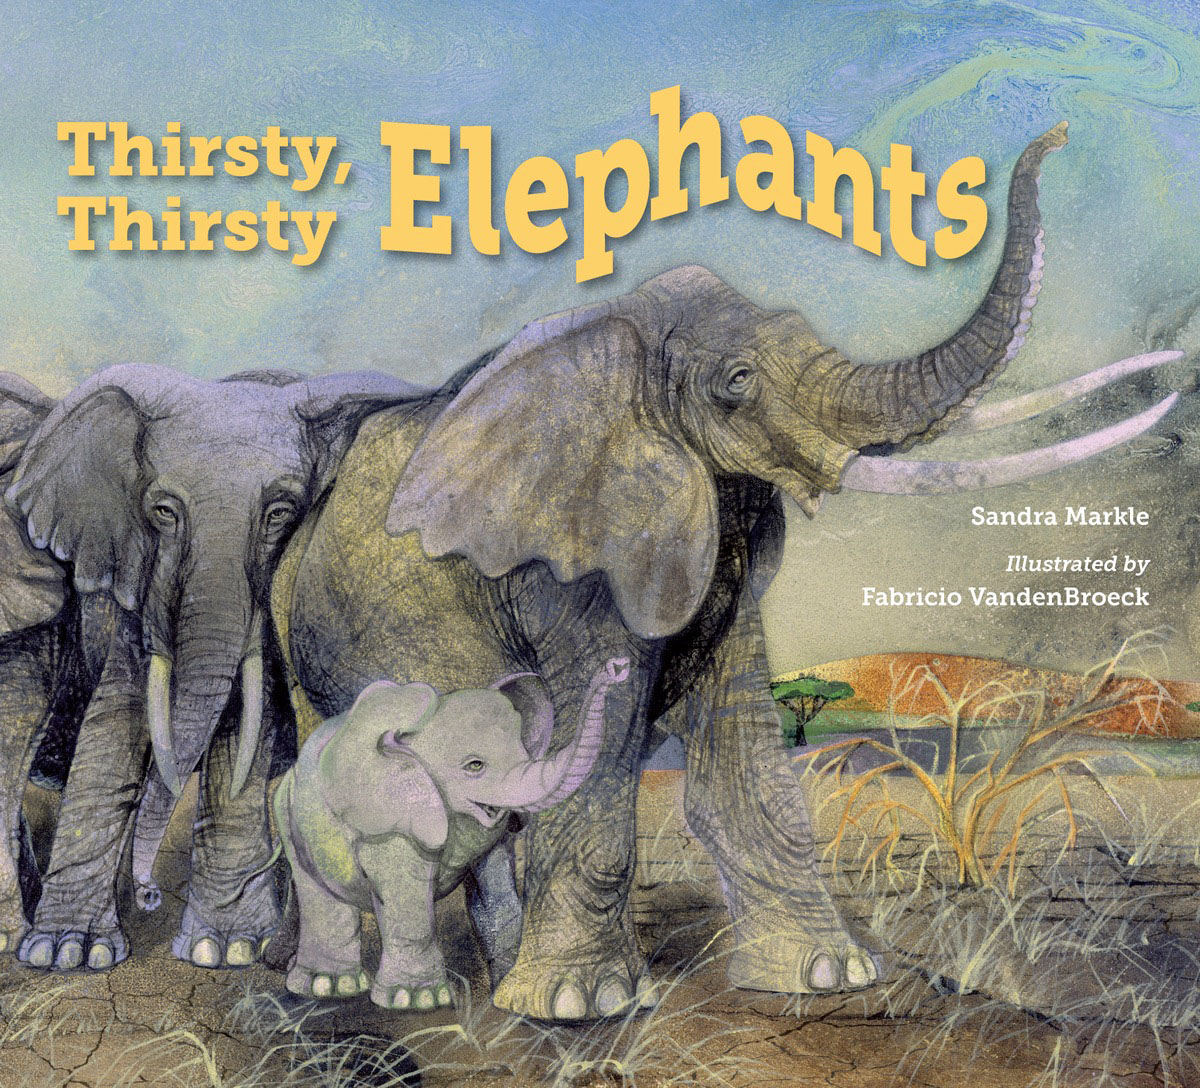 Thirsty, Thirsty Elephants becoming grandma page 9